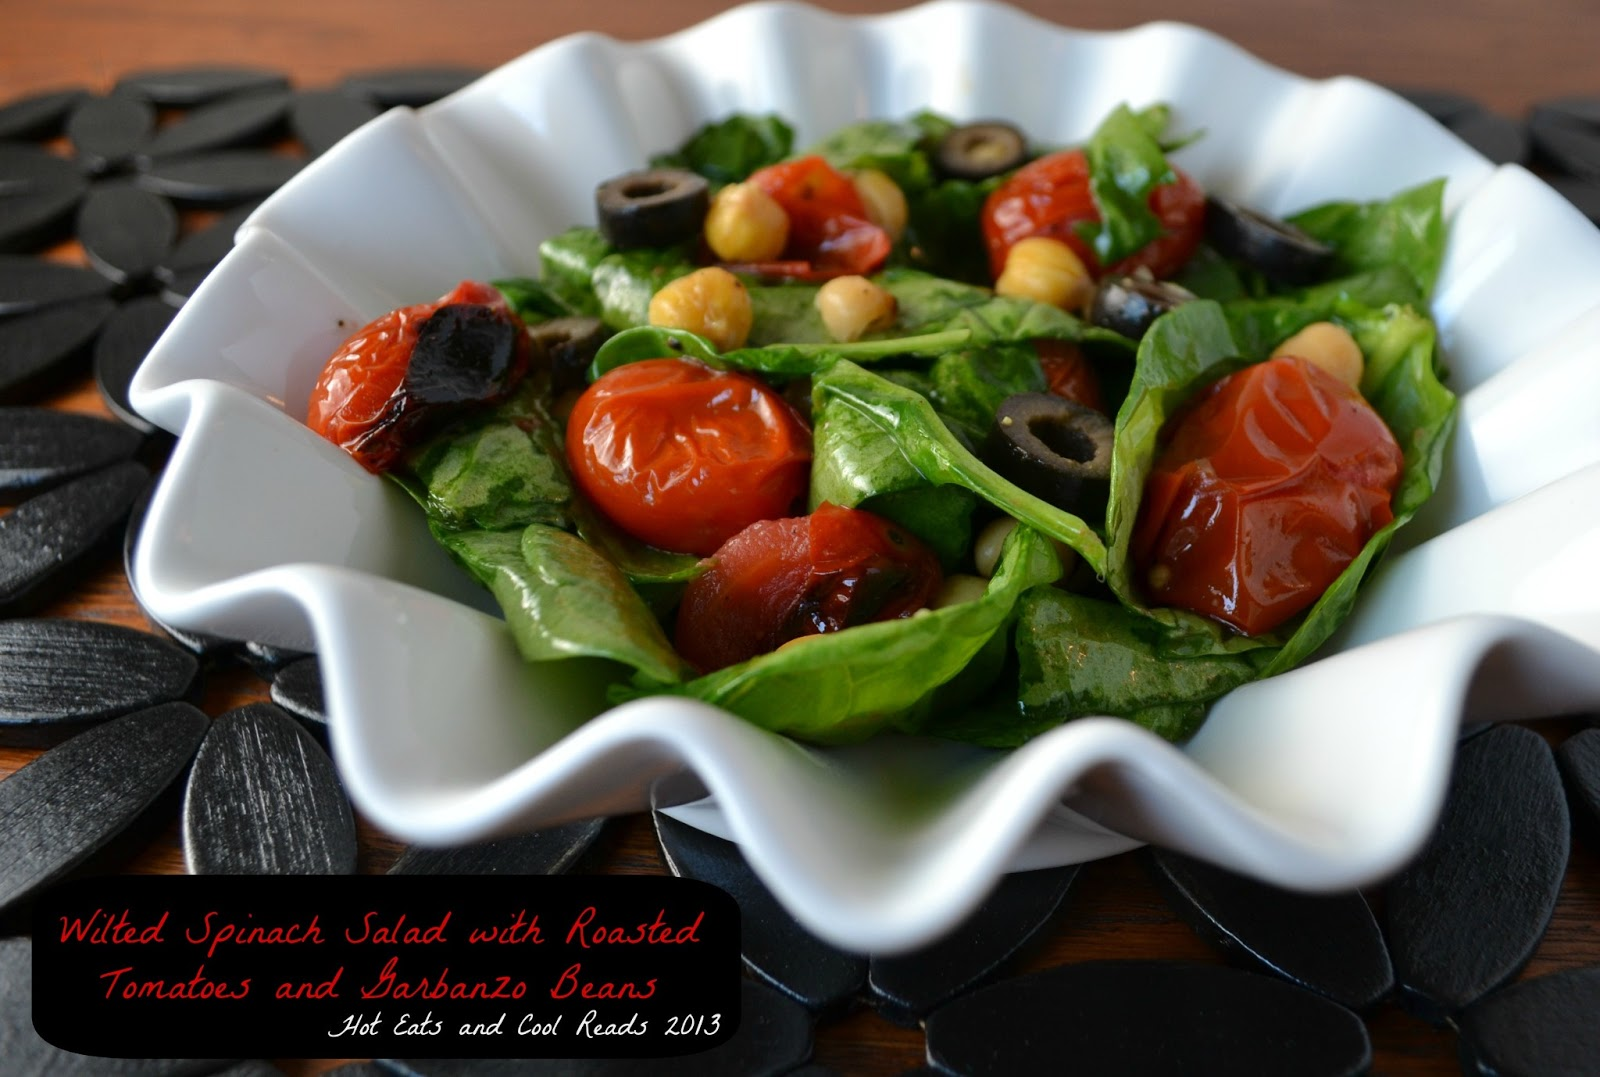 Wilted Spinach Salad With Roasted Tomatoes and Garbanzo Beans- 17 Healthy Salads That Don't Taste Like Rabbit Food. serenabakessimplyfromscratch.com